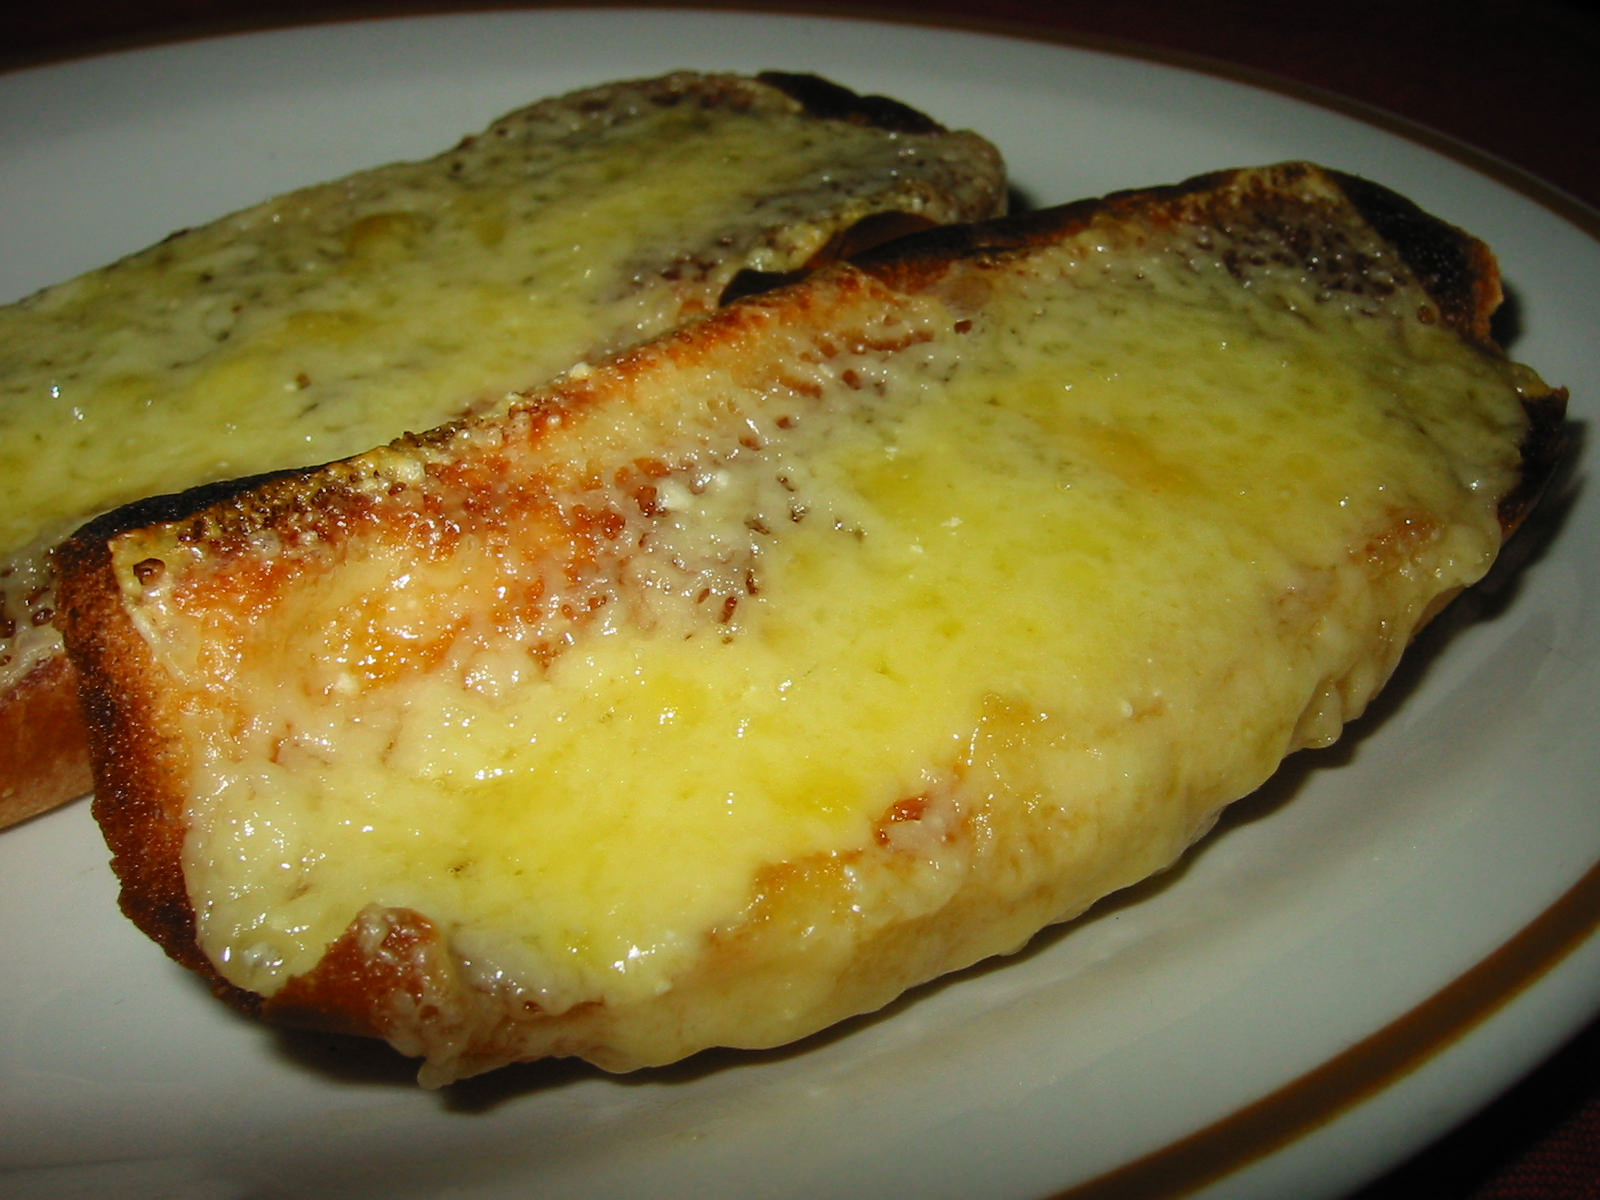 Grilled cheese on toast